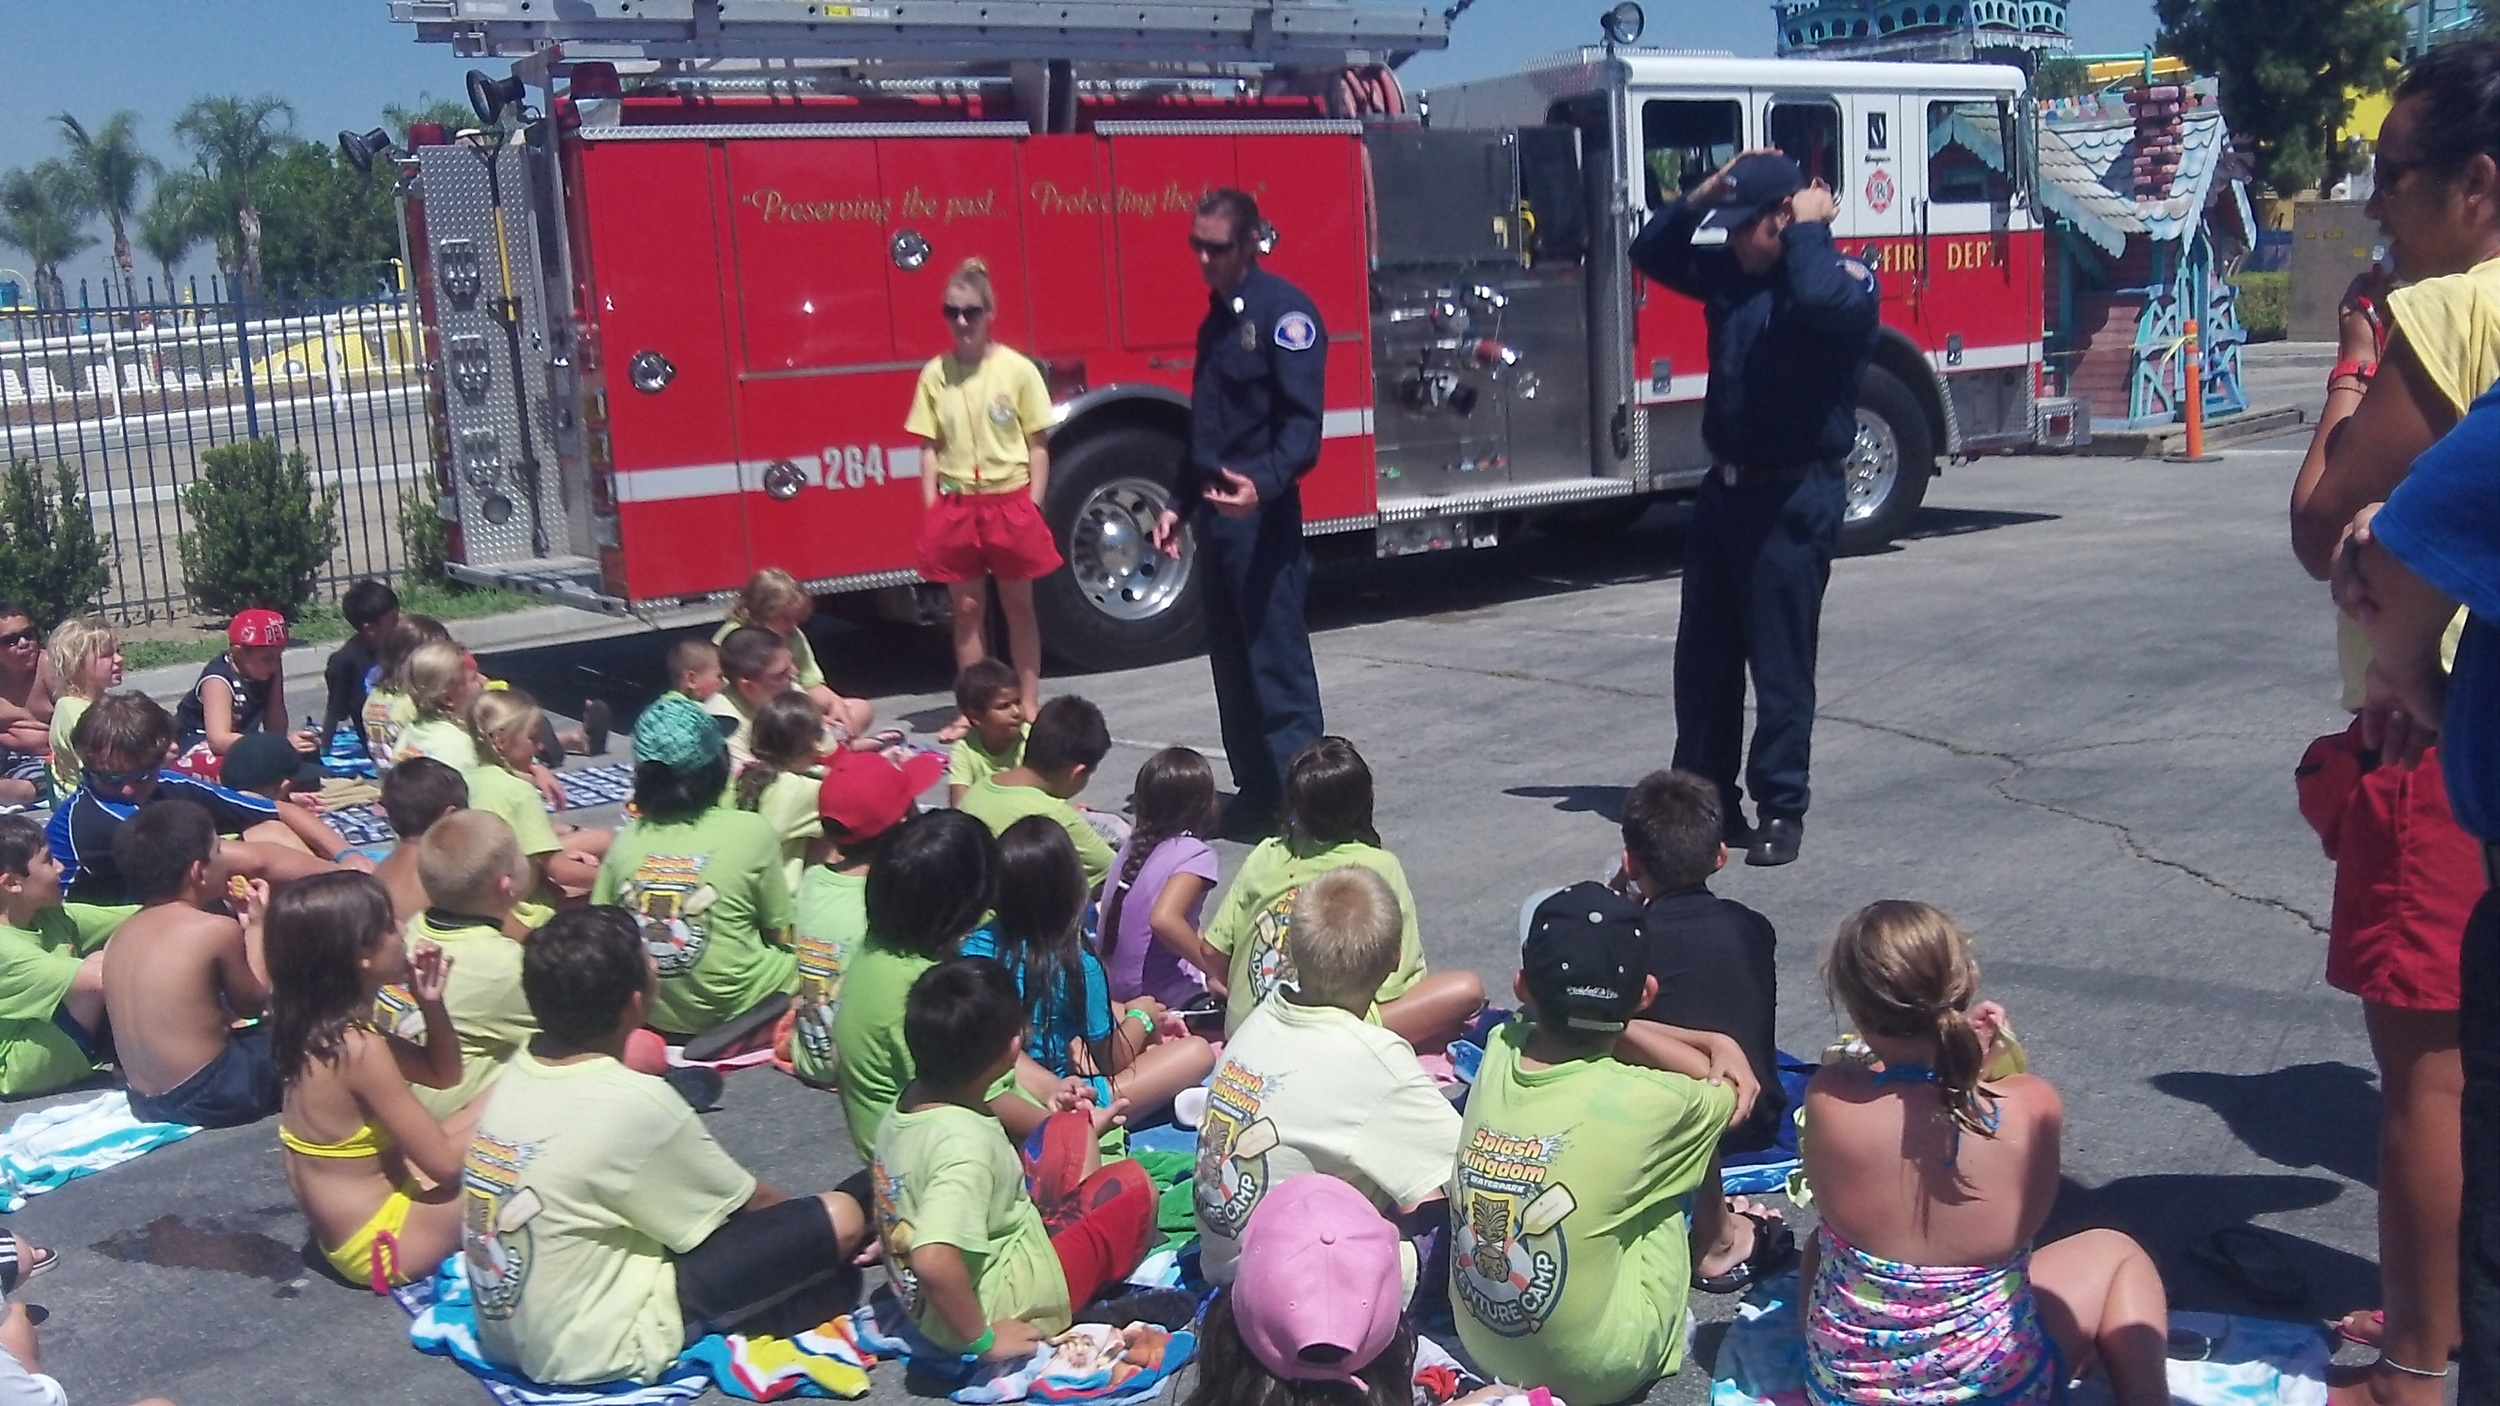 Our adventurers observing a Redlands Fire Department presentation. See, education  is  fun!